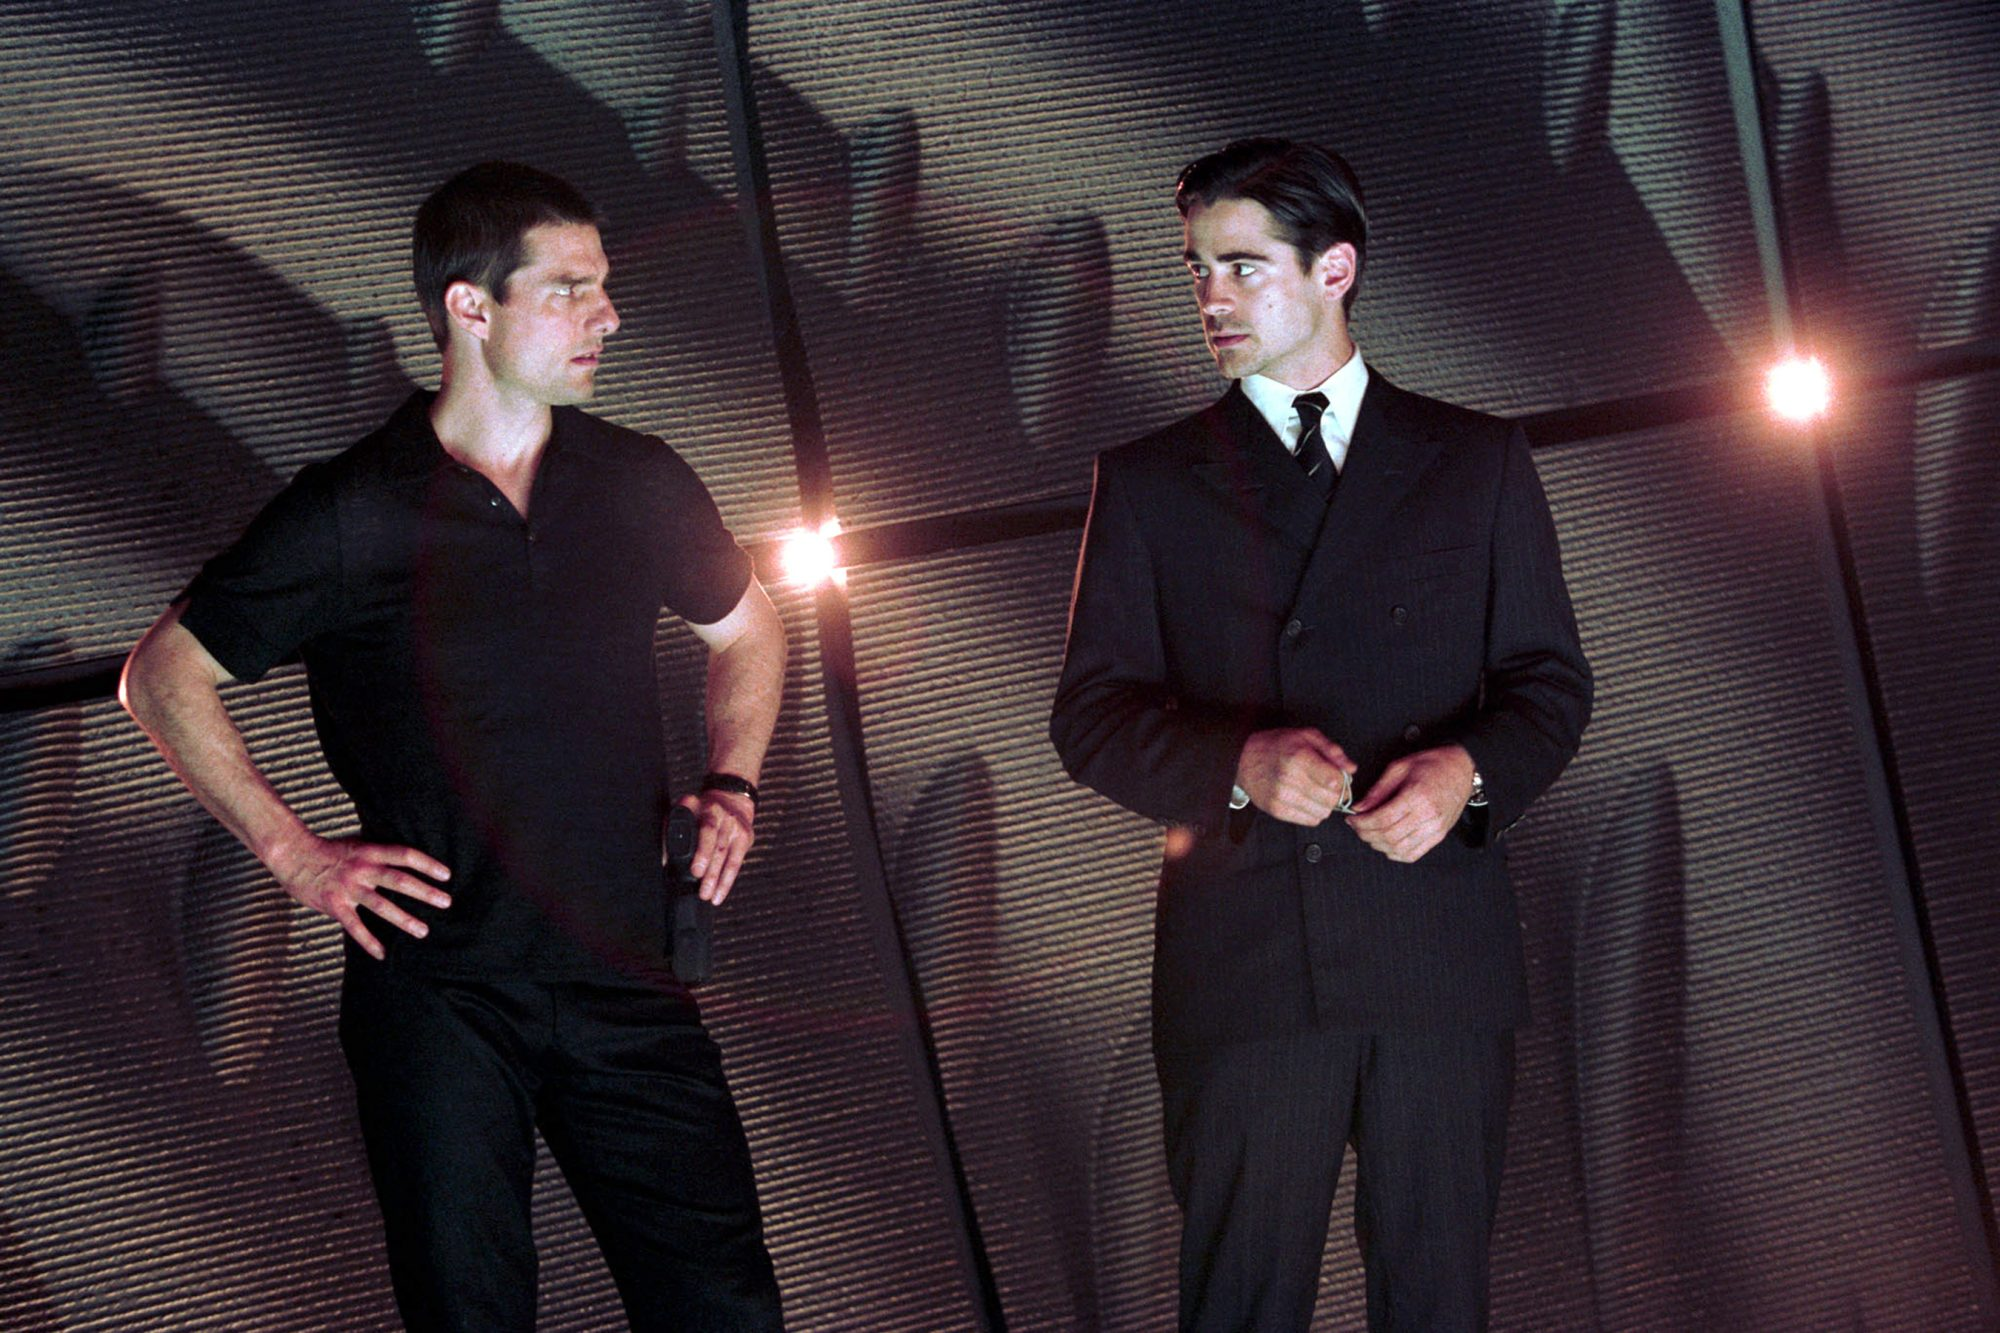 Minority report (2002)L-R: Tom Cruise and Colin Farrell